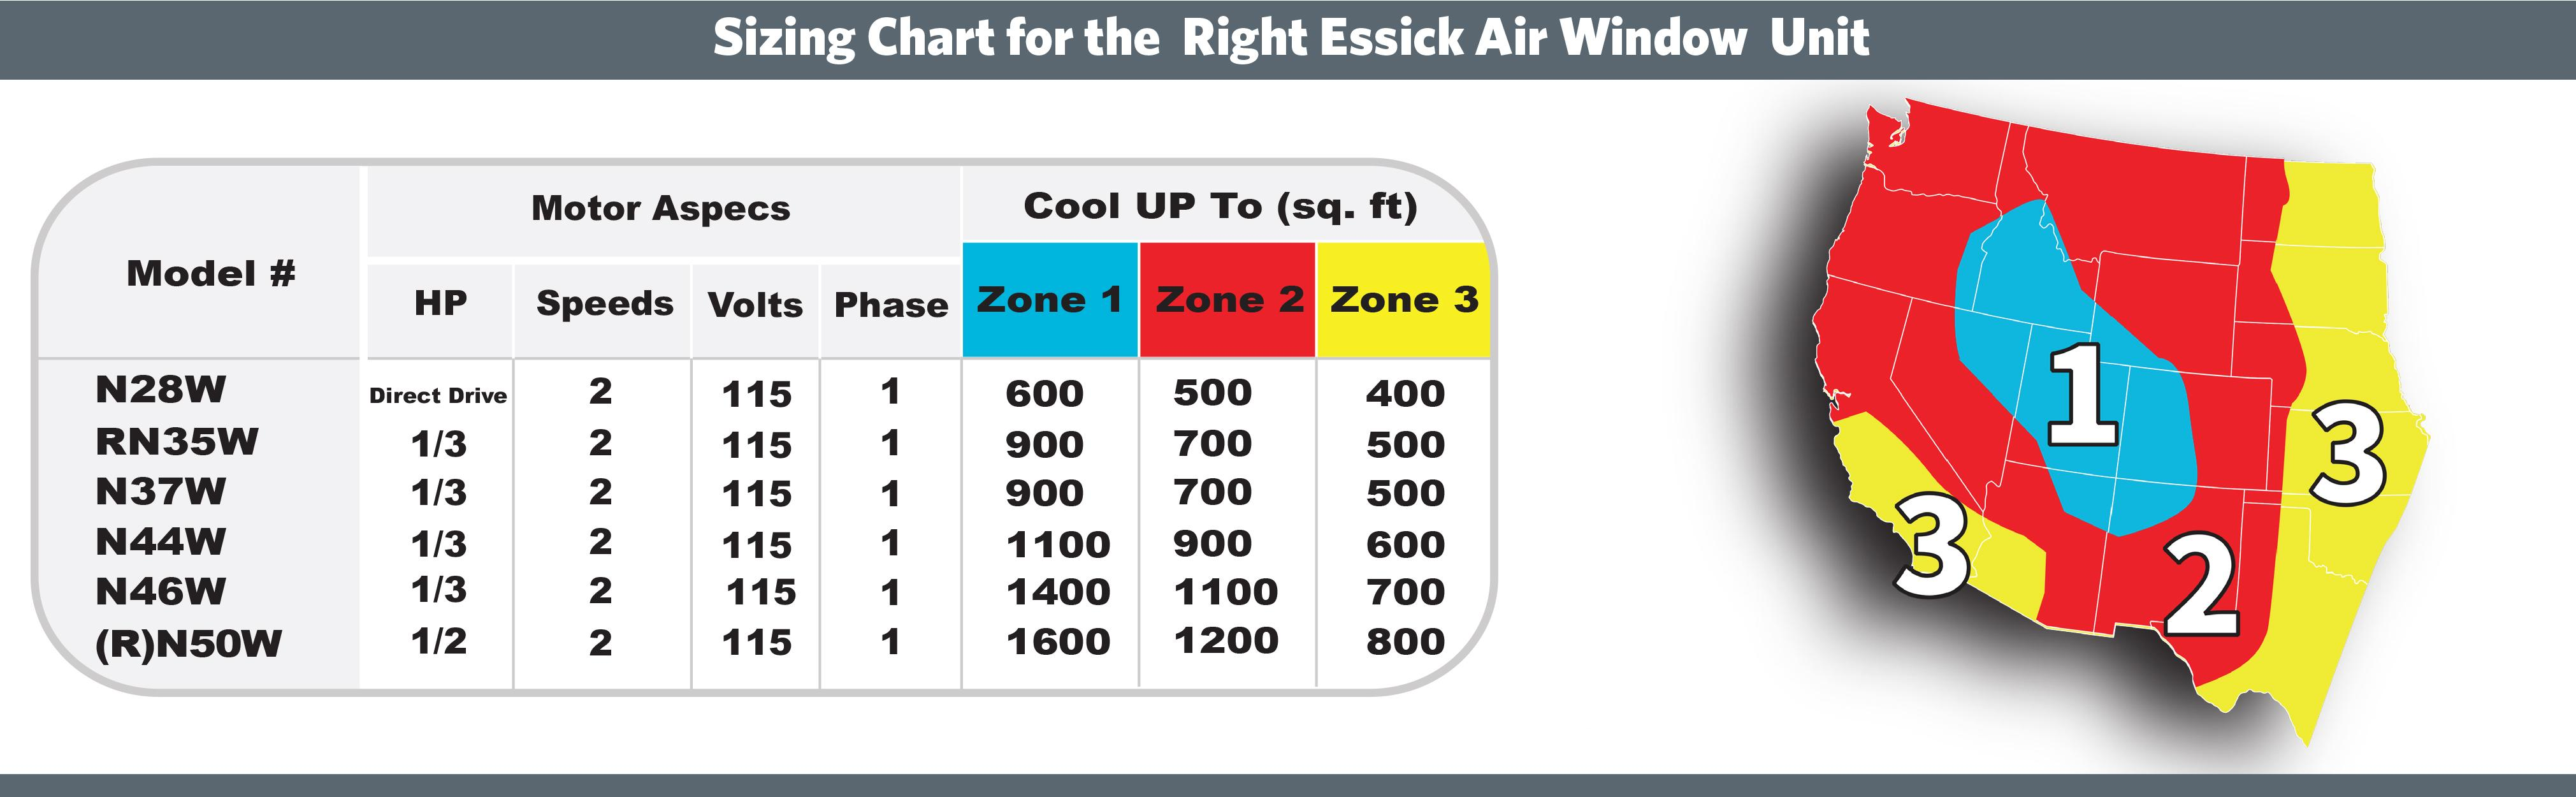 Essick Air Window Evaporative Cooler Rn50w Home Kitchen Swamp Control Box Wiring Diagram Sizing Chart